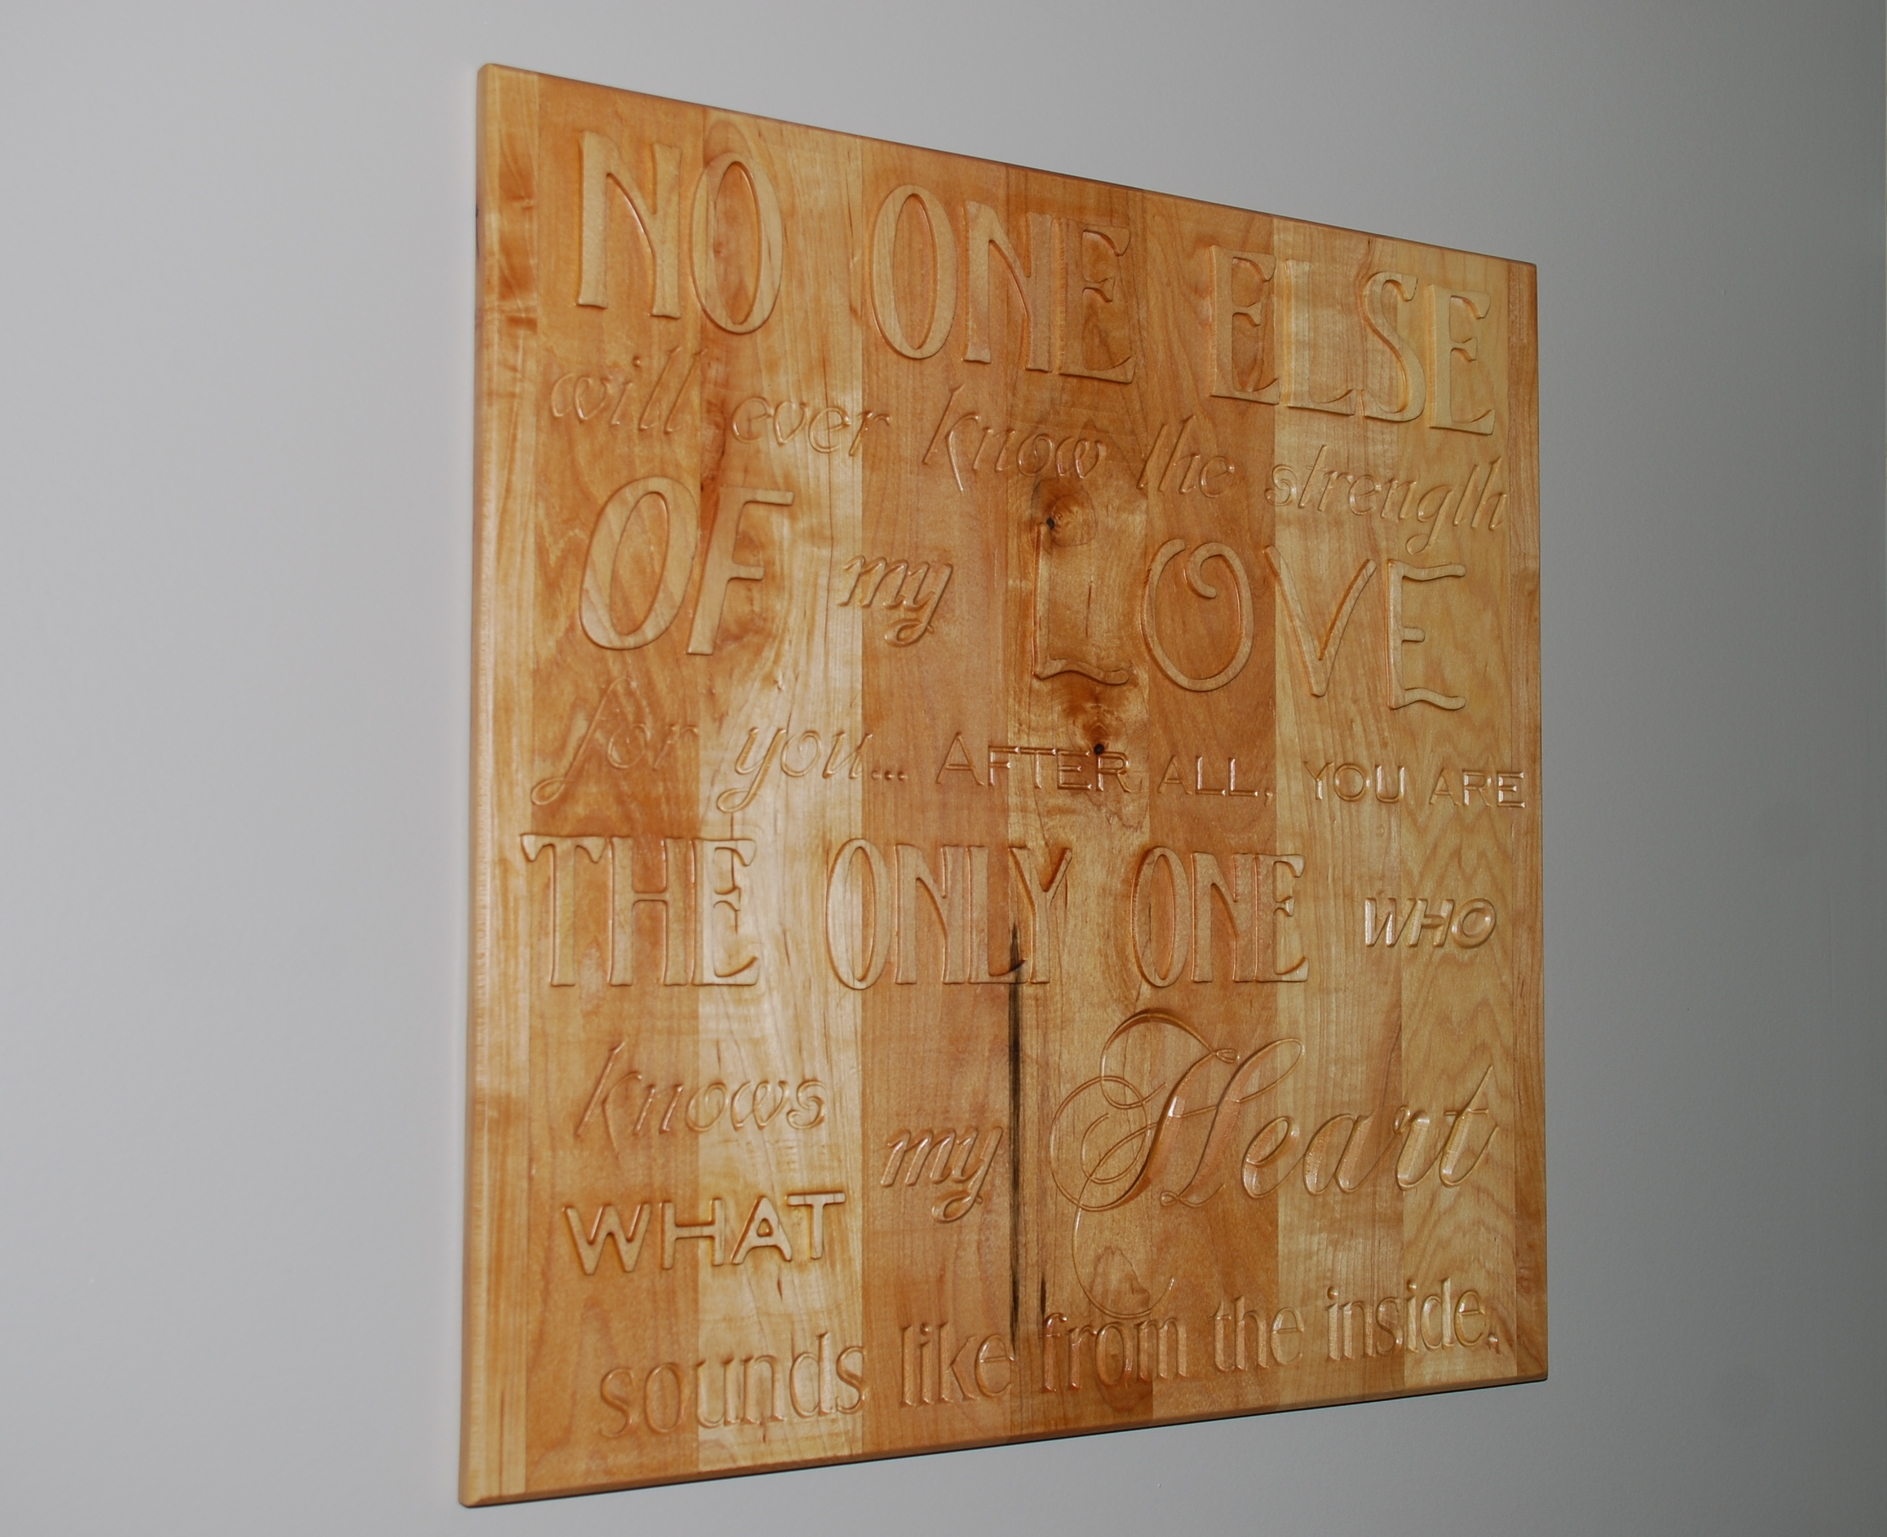 This sign was created out of a laminated slab of maple. It uses a combination of Pocketing and V-carving to create the desired effect. The lettering was intentionally left unpainted to help showcase the natural beauty of the wood.